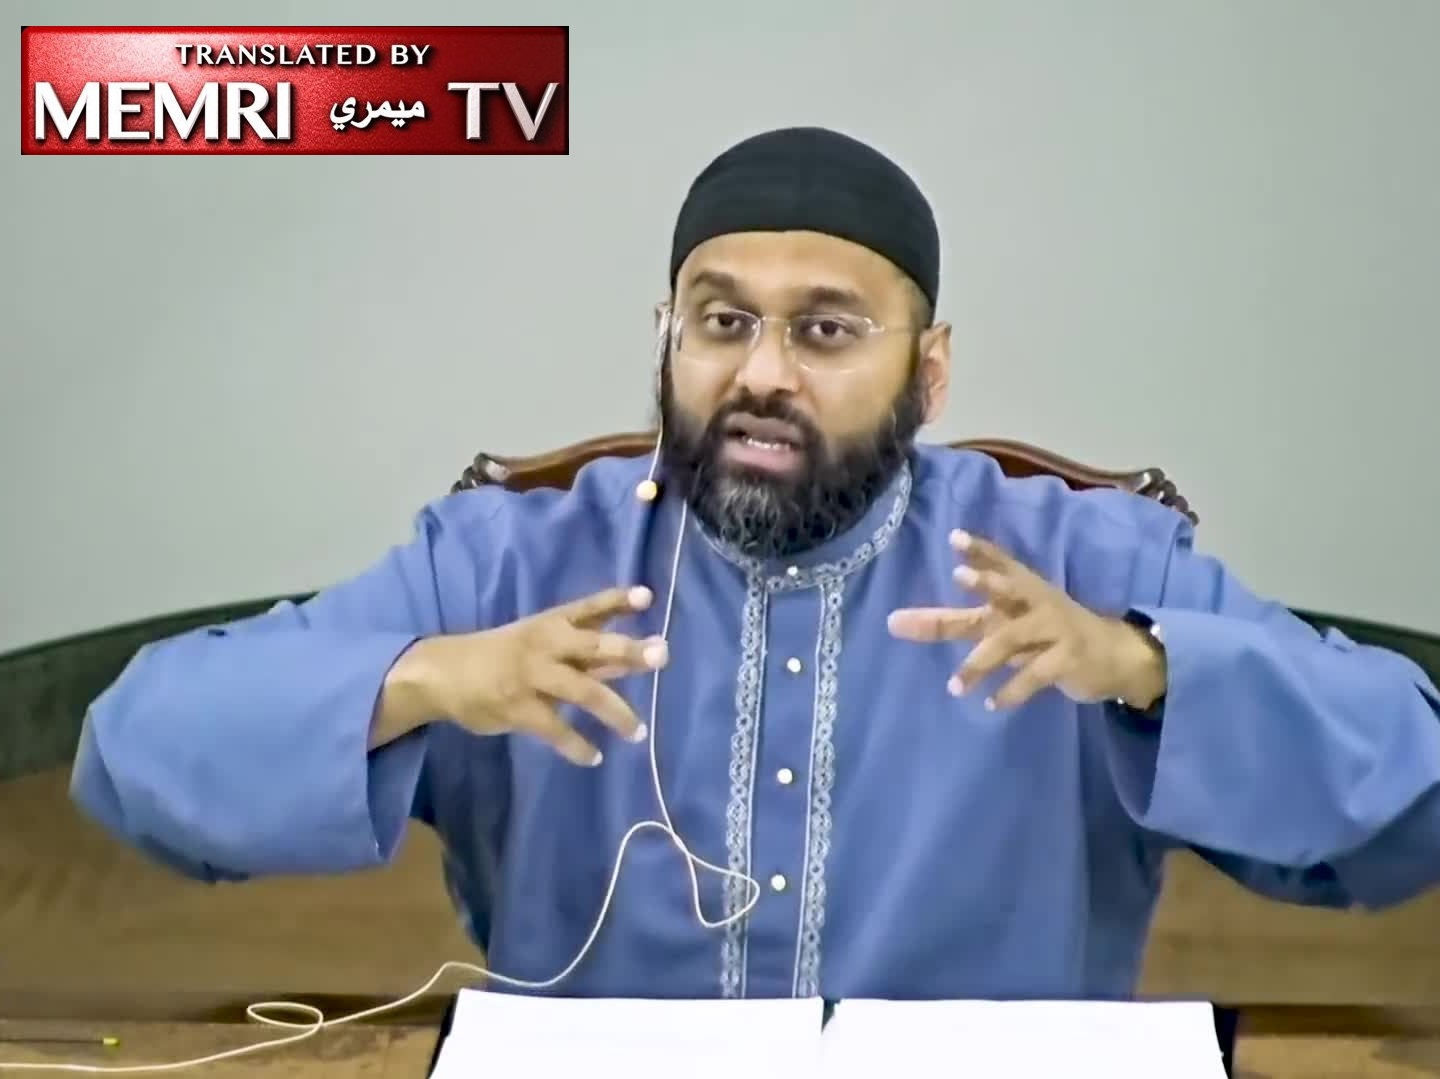 American Islamic Scholar Sheikh Yasir Qadhi Defends Antisemitic Comments: MEMRI Jumps on Any Preacher Who Quotes Hadith about the Trees and the Rocks, But the Killing of Jews Is Prediction, Not Prescription; Muslims Cannot Be Antisemites